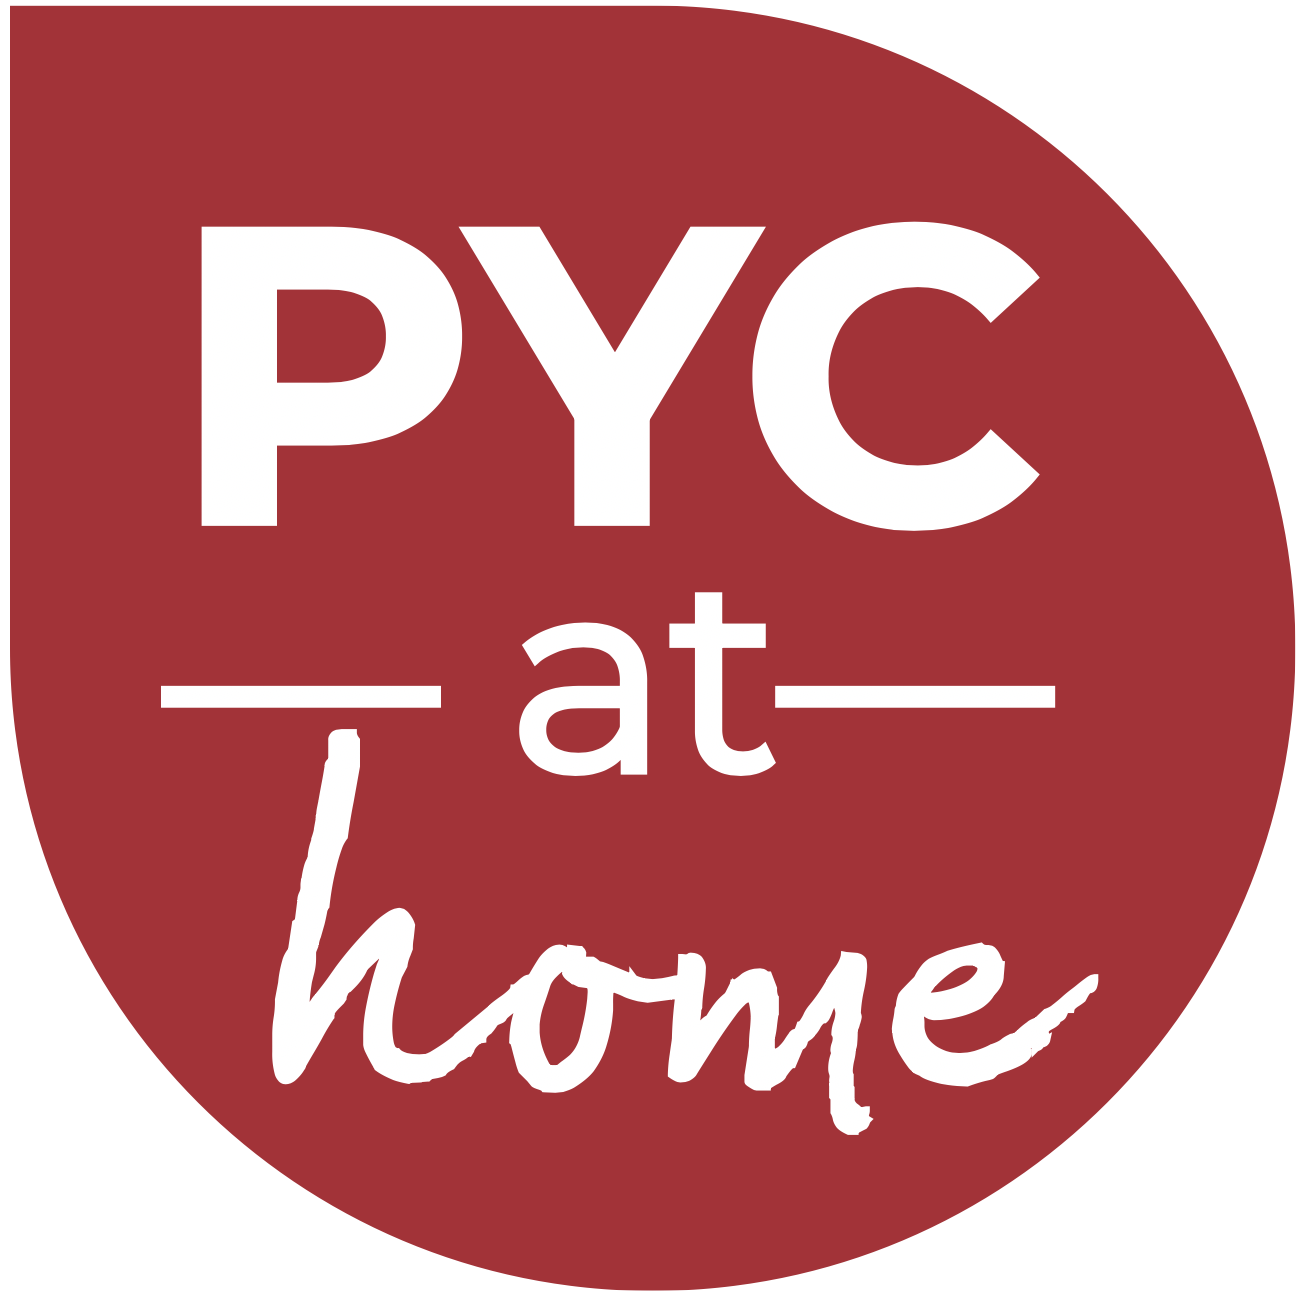 PYC at home